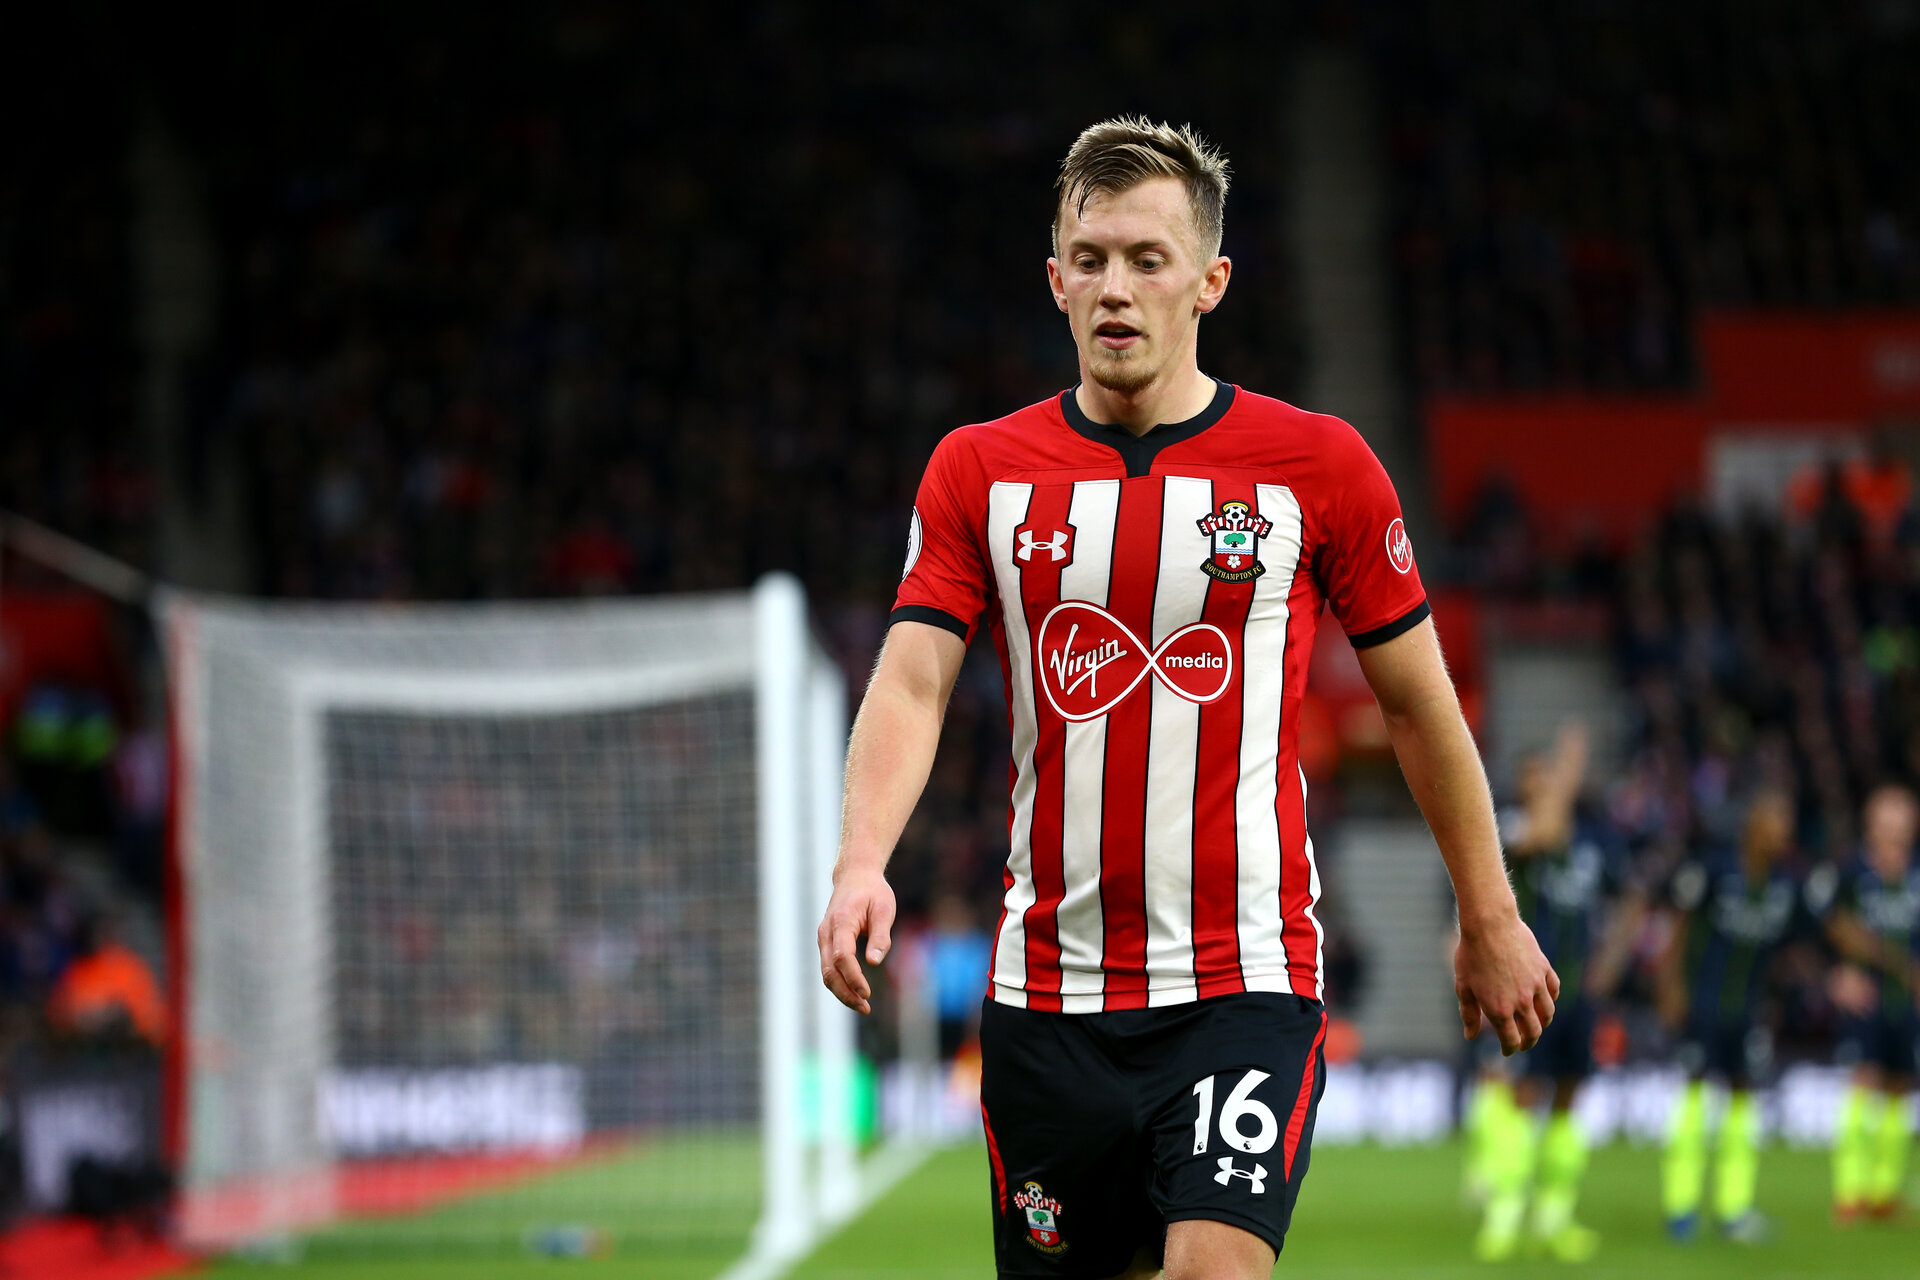 SOUTHAMPTON, ENGLAND - DECEMBER 30: James Ward-Prowse of Southampton FC walking to the corner post during the Premier League match between Southampton FC and Manchester City at St Mary's Stadium on December 30, 2018 in Southampton, United Kingdom. (Photo by James Bridle - Southampton FC/Southampton FC via Getty Images)